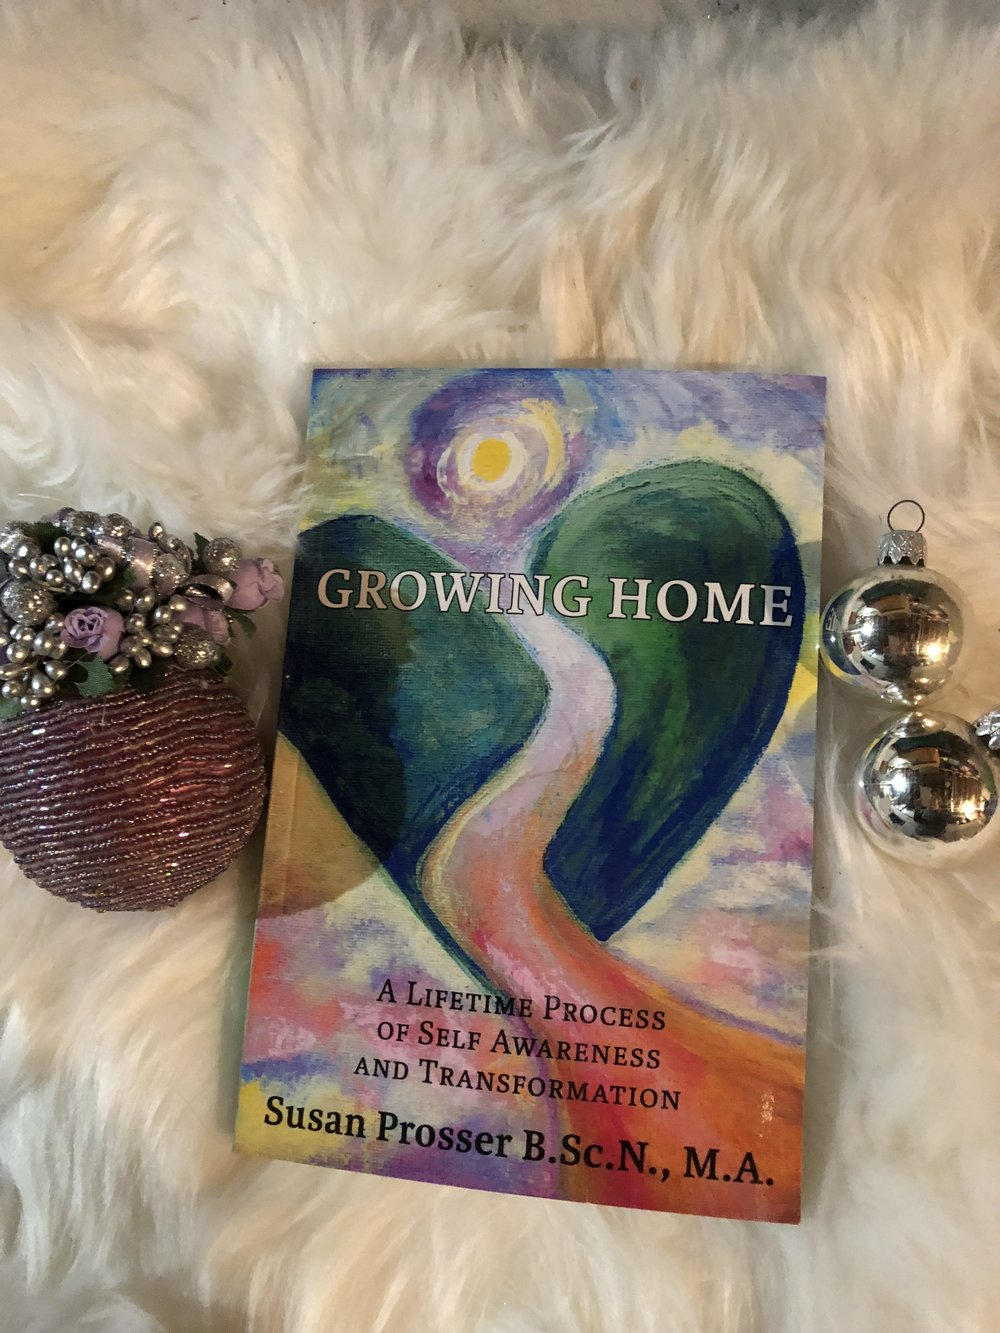 2018-11-19 - Growing Home.jpeg